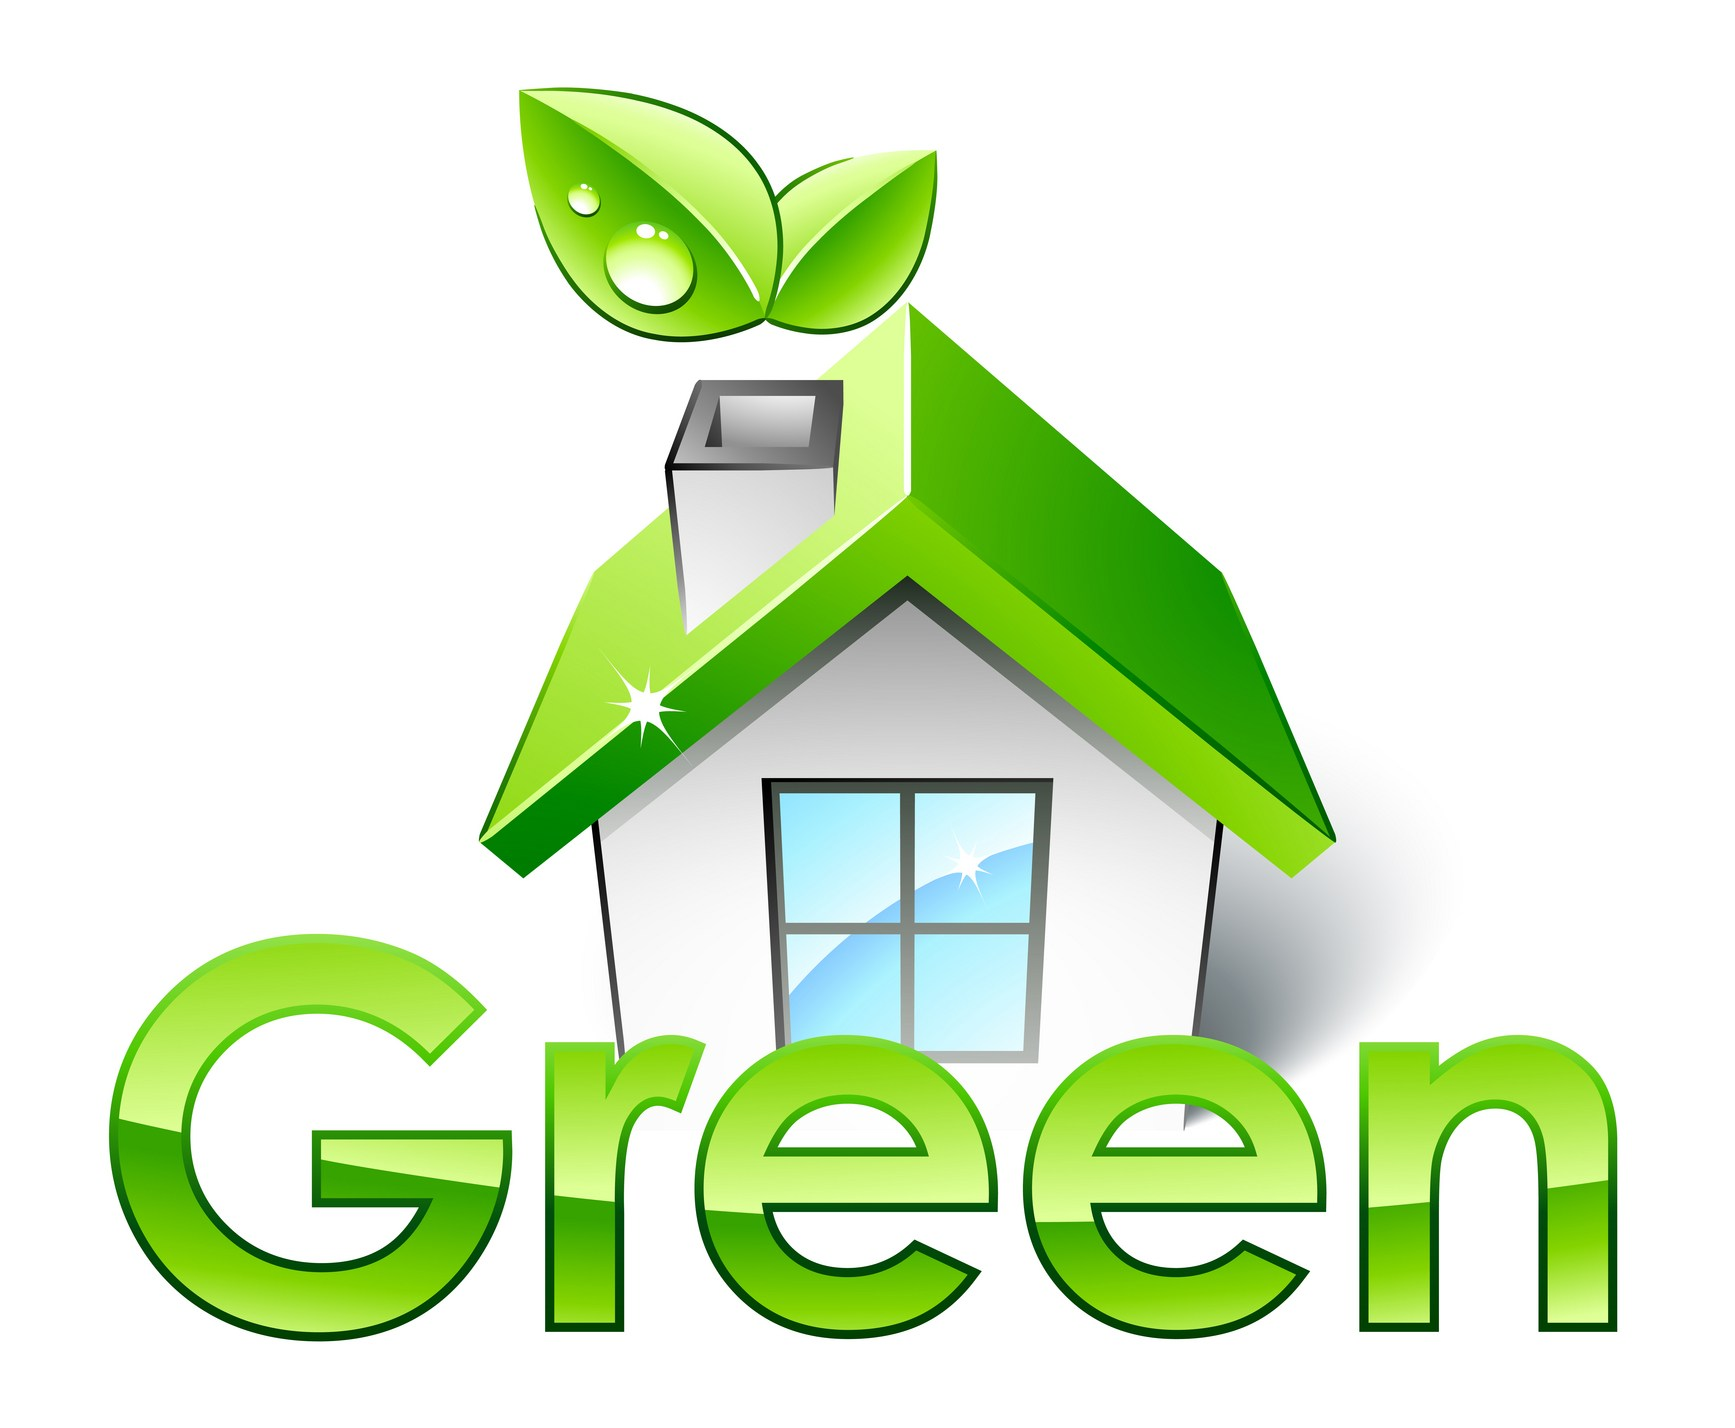 Go green clipart image library download Go green clipart images 8 » Clipart Portal image library download